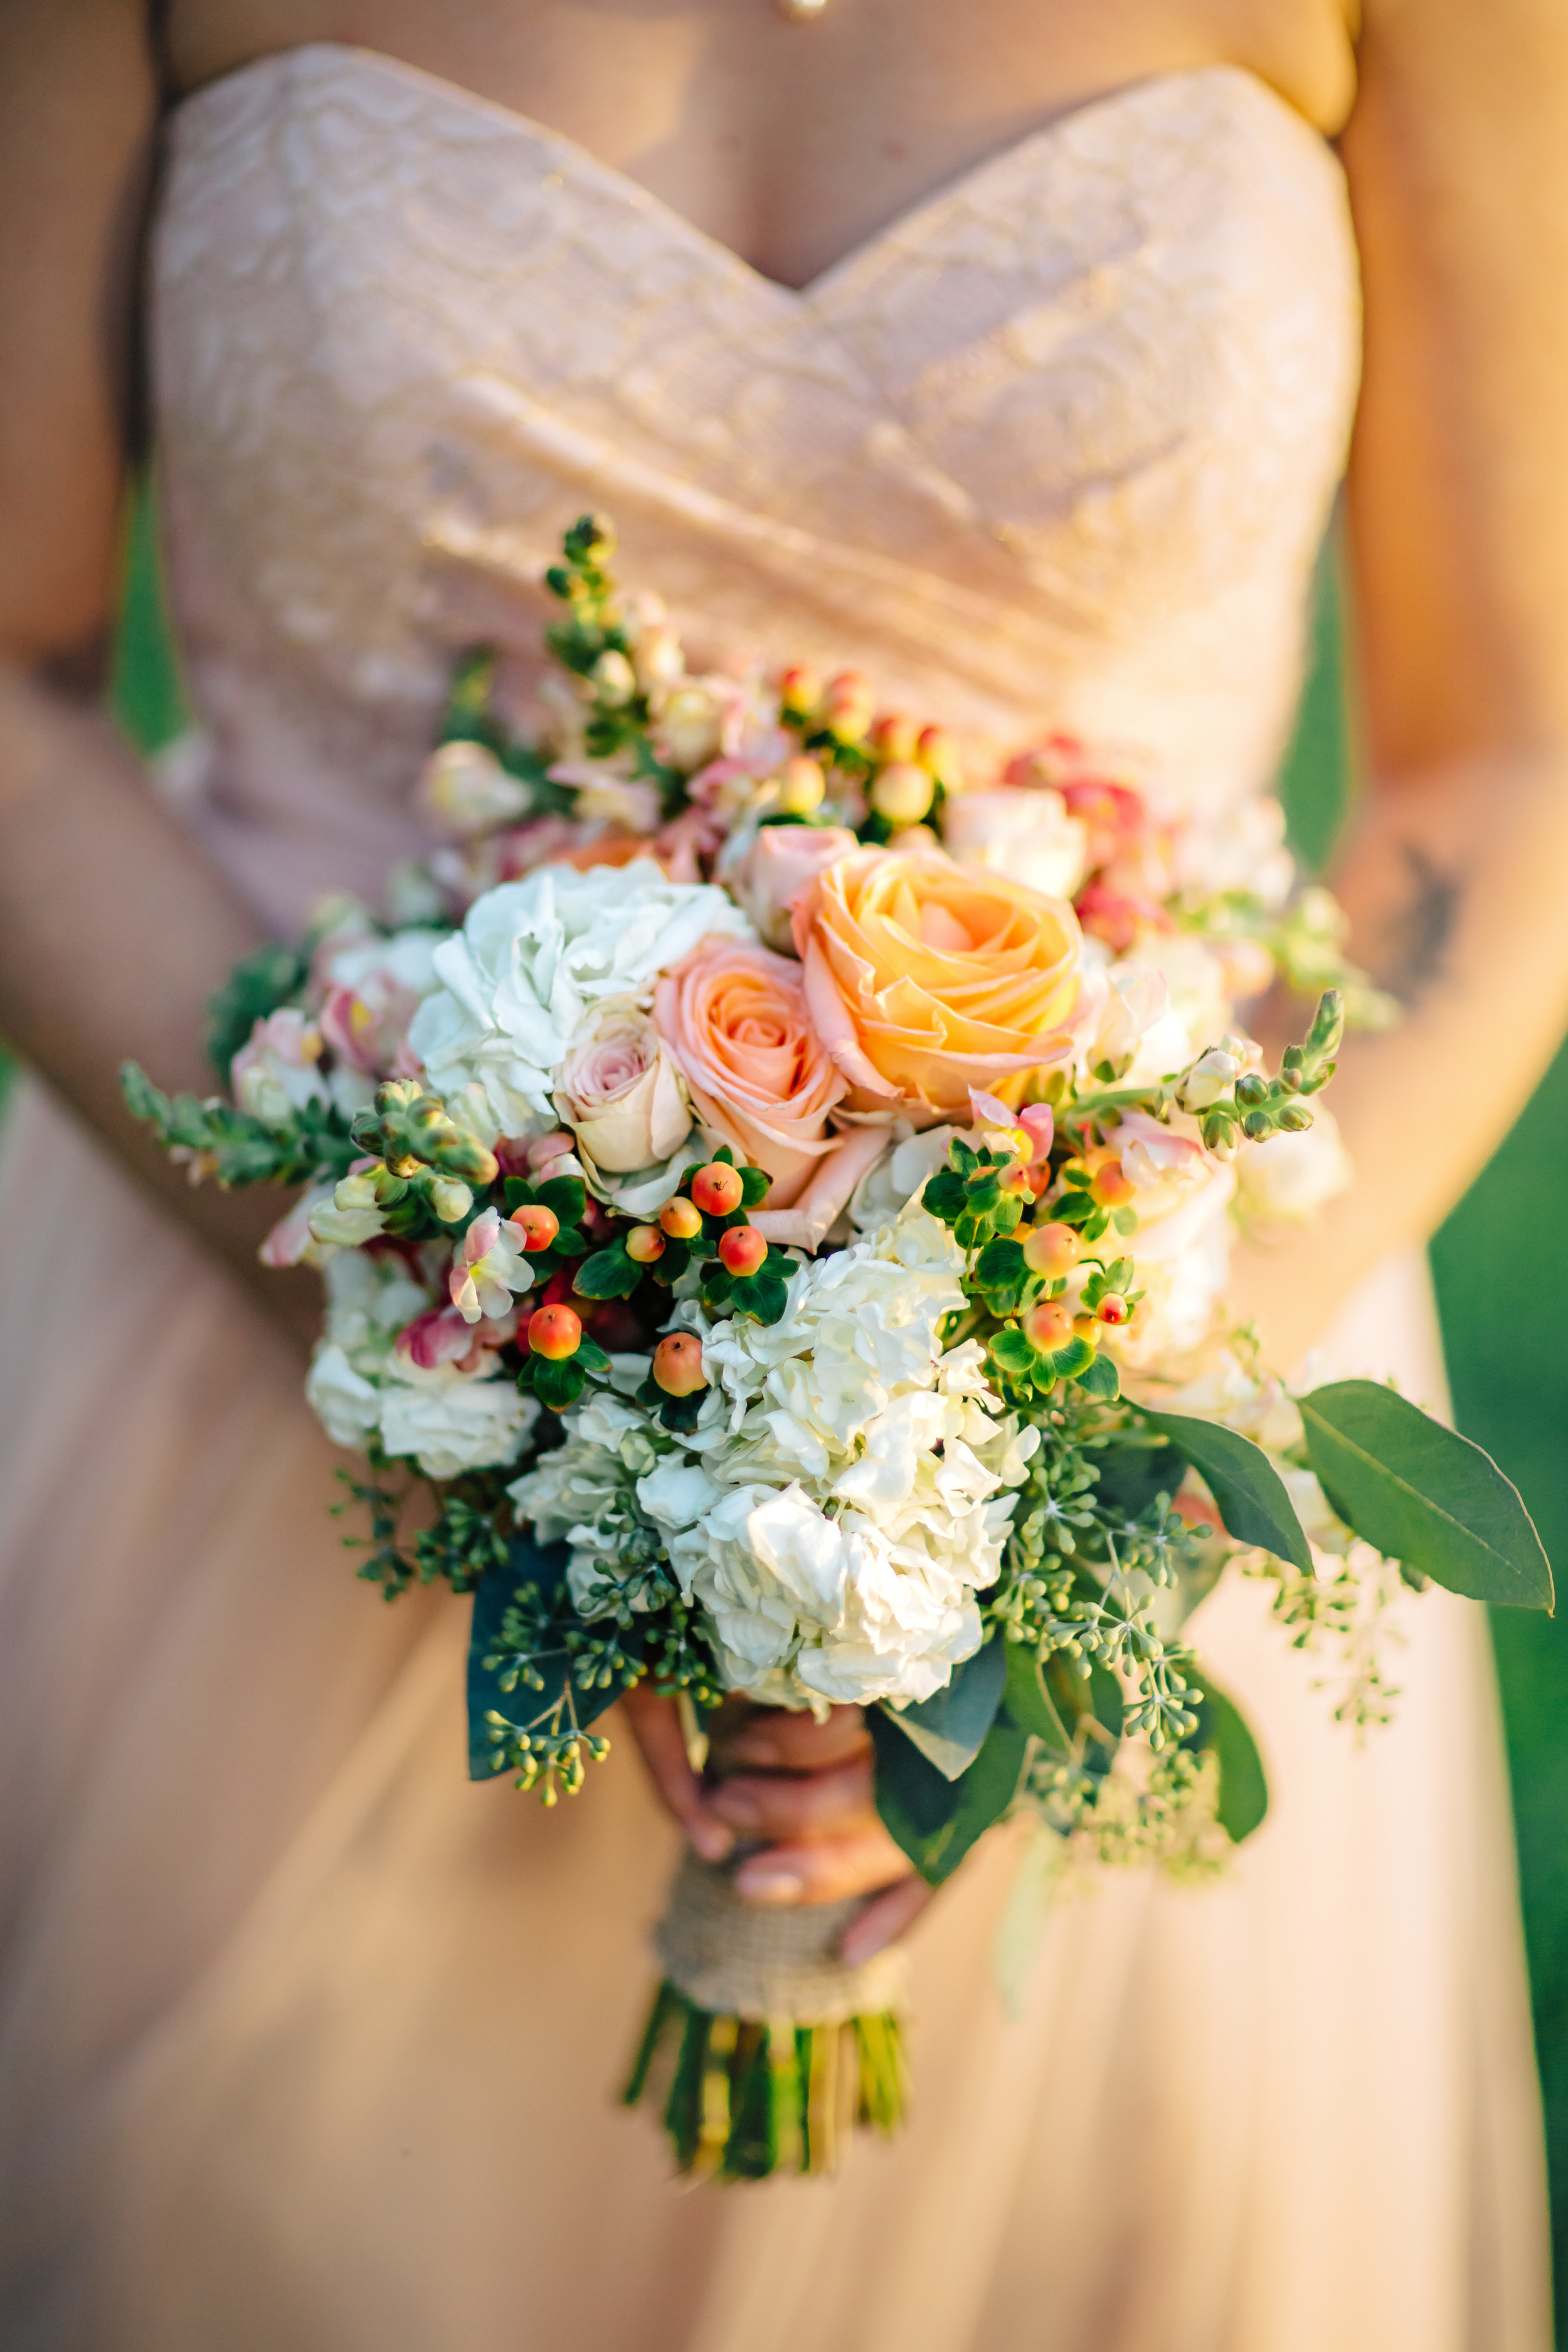 Langford Park wedding, with a floral bouquet inspired by peach, salmon, white, and soft greens, wrapped in rustic burlap.